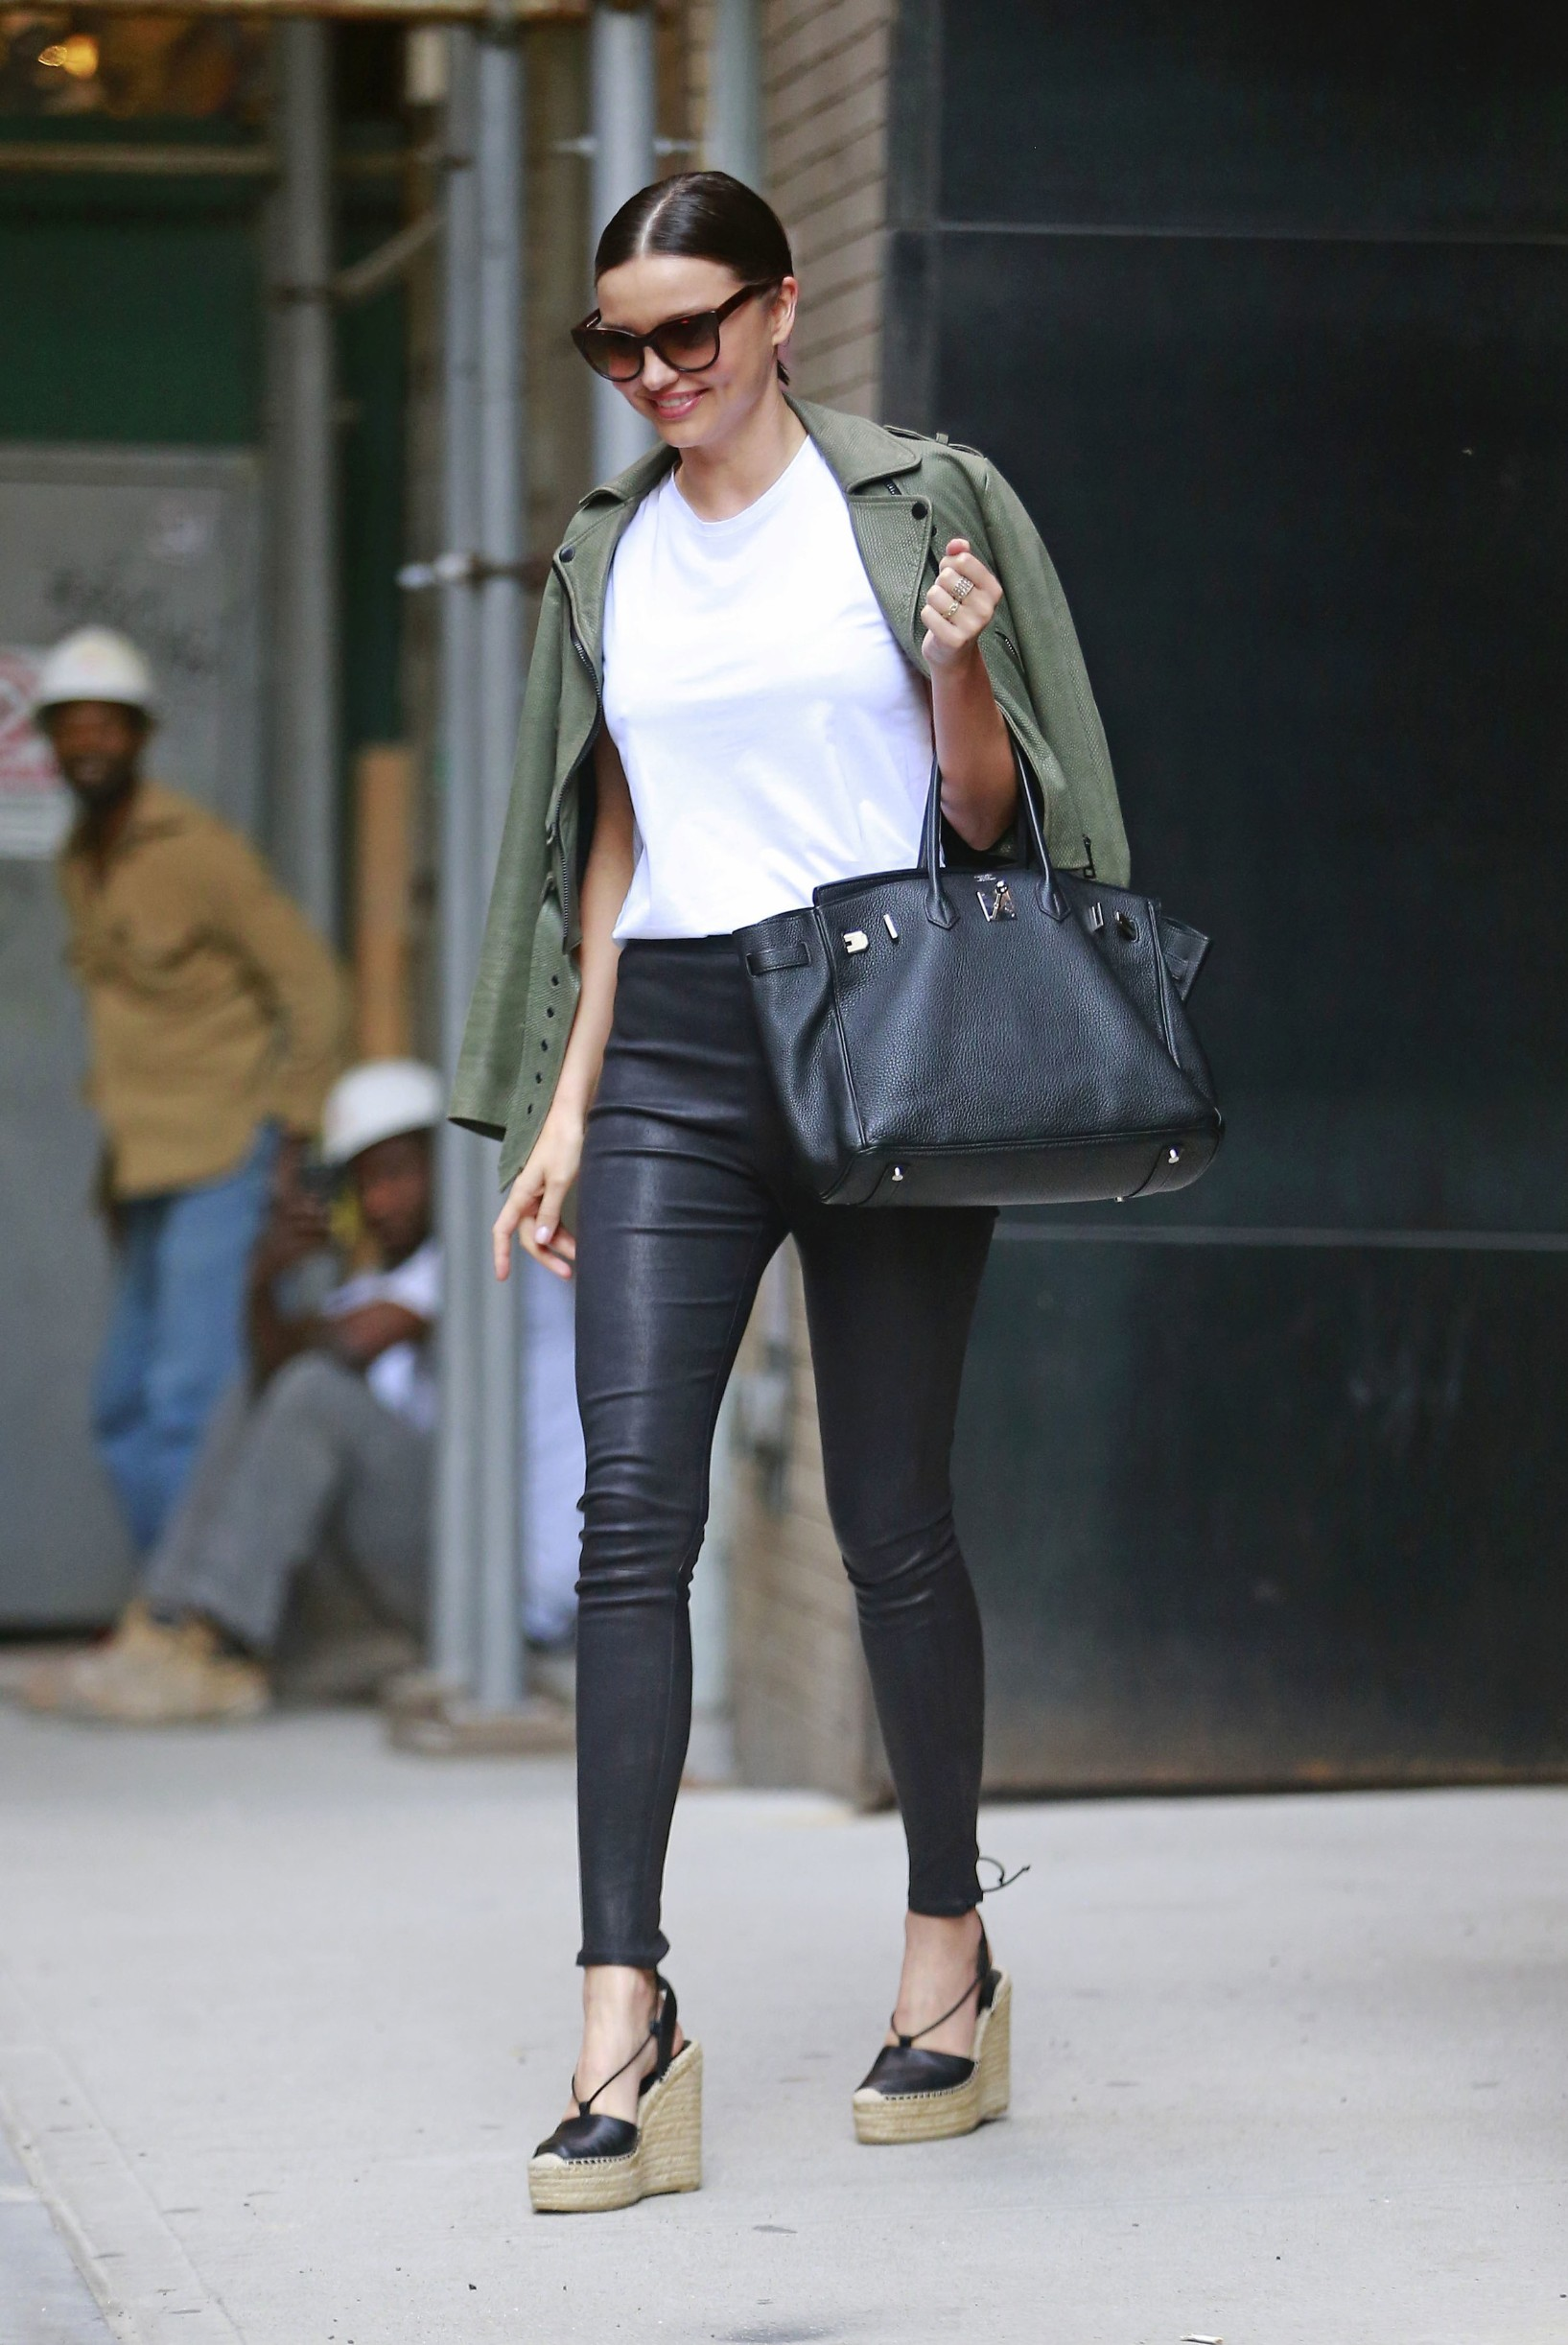 152840, Miranda Kerr wears leather pants and wedge espadrilles while exiting a photostudio in Tribeca, NYC. The model recently took the plunge and bought a house with her billionaire Snapchat CEO boyfriend, Evan Spiegel. New York, New York - Wednesday May 25, 2016., Image: 286811447, License: Rights-managed, Restrictions: , Model Release: no, Credit line: PacificCoastNews / Pacific coast news / Profimedia